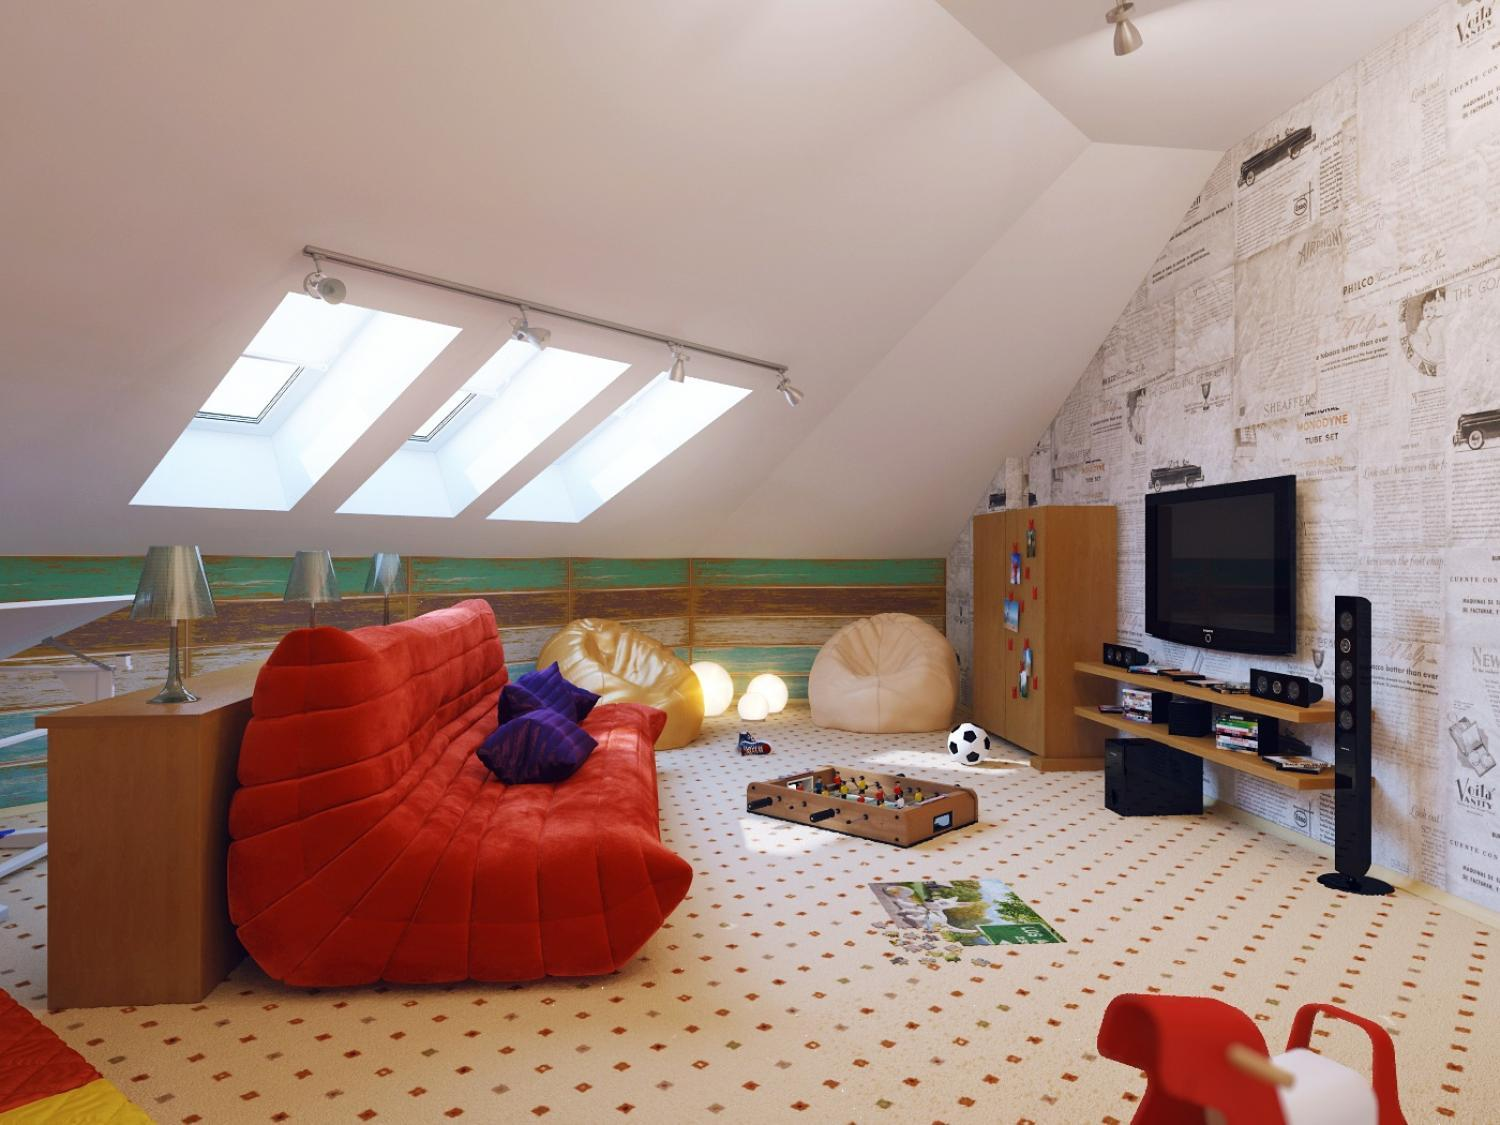 Attic Space Ideas 16 Small Attic Room Design Ideas Houz Buzz